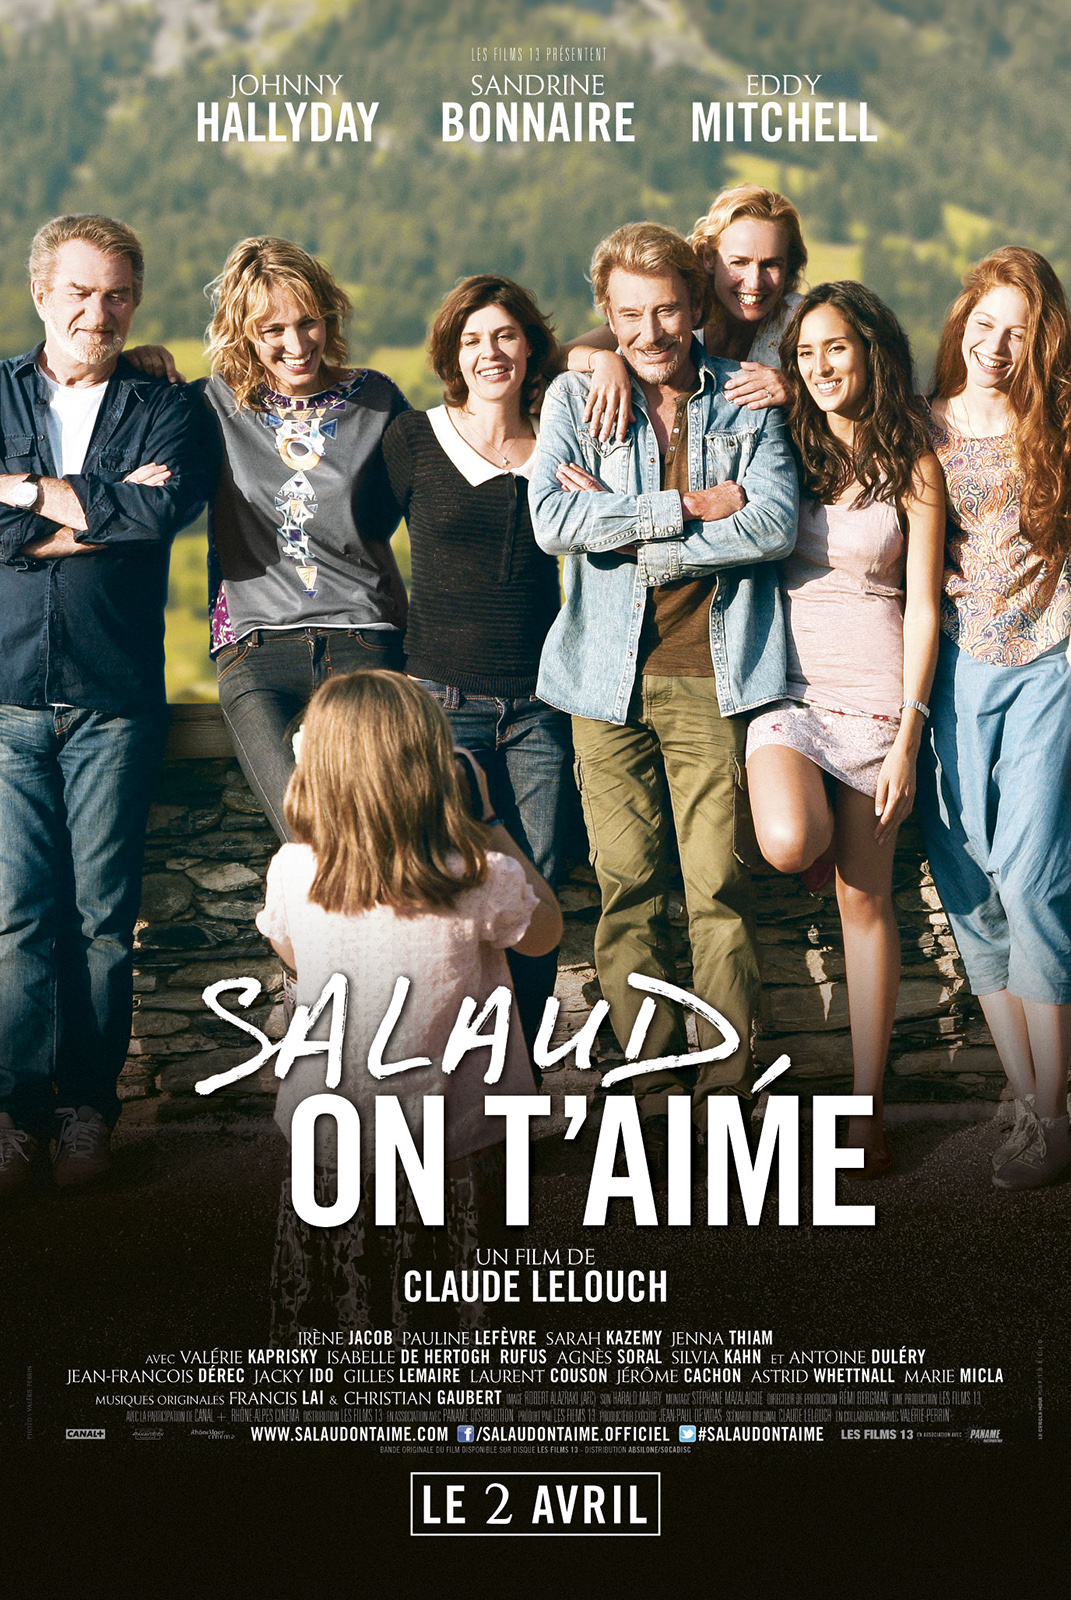 Telecharger Salaud, on t'aime  FRENCH BDRIP Gratuitement